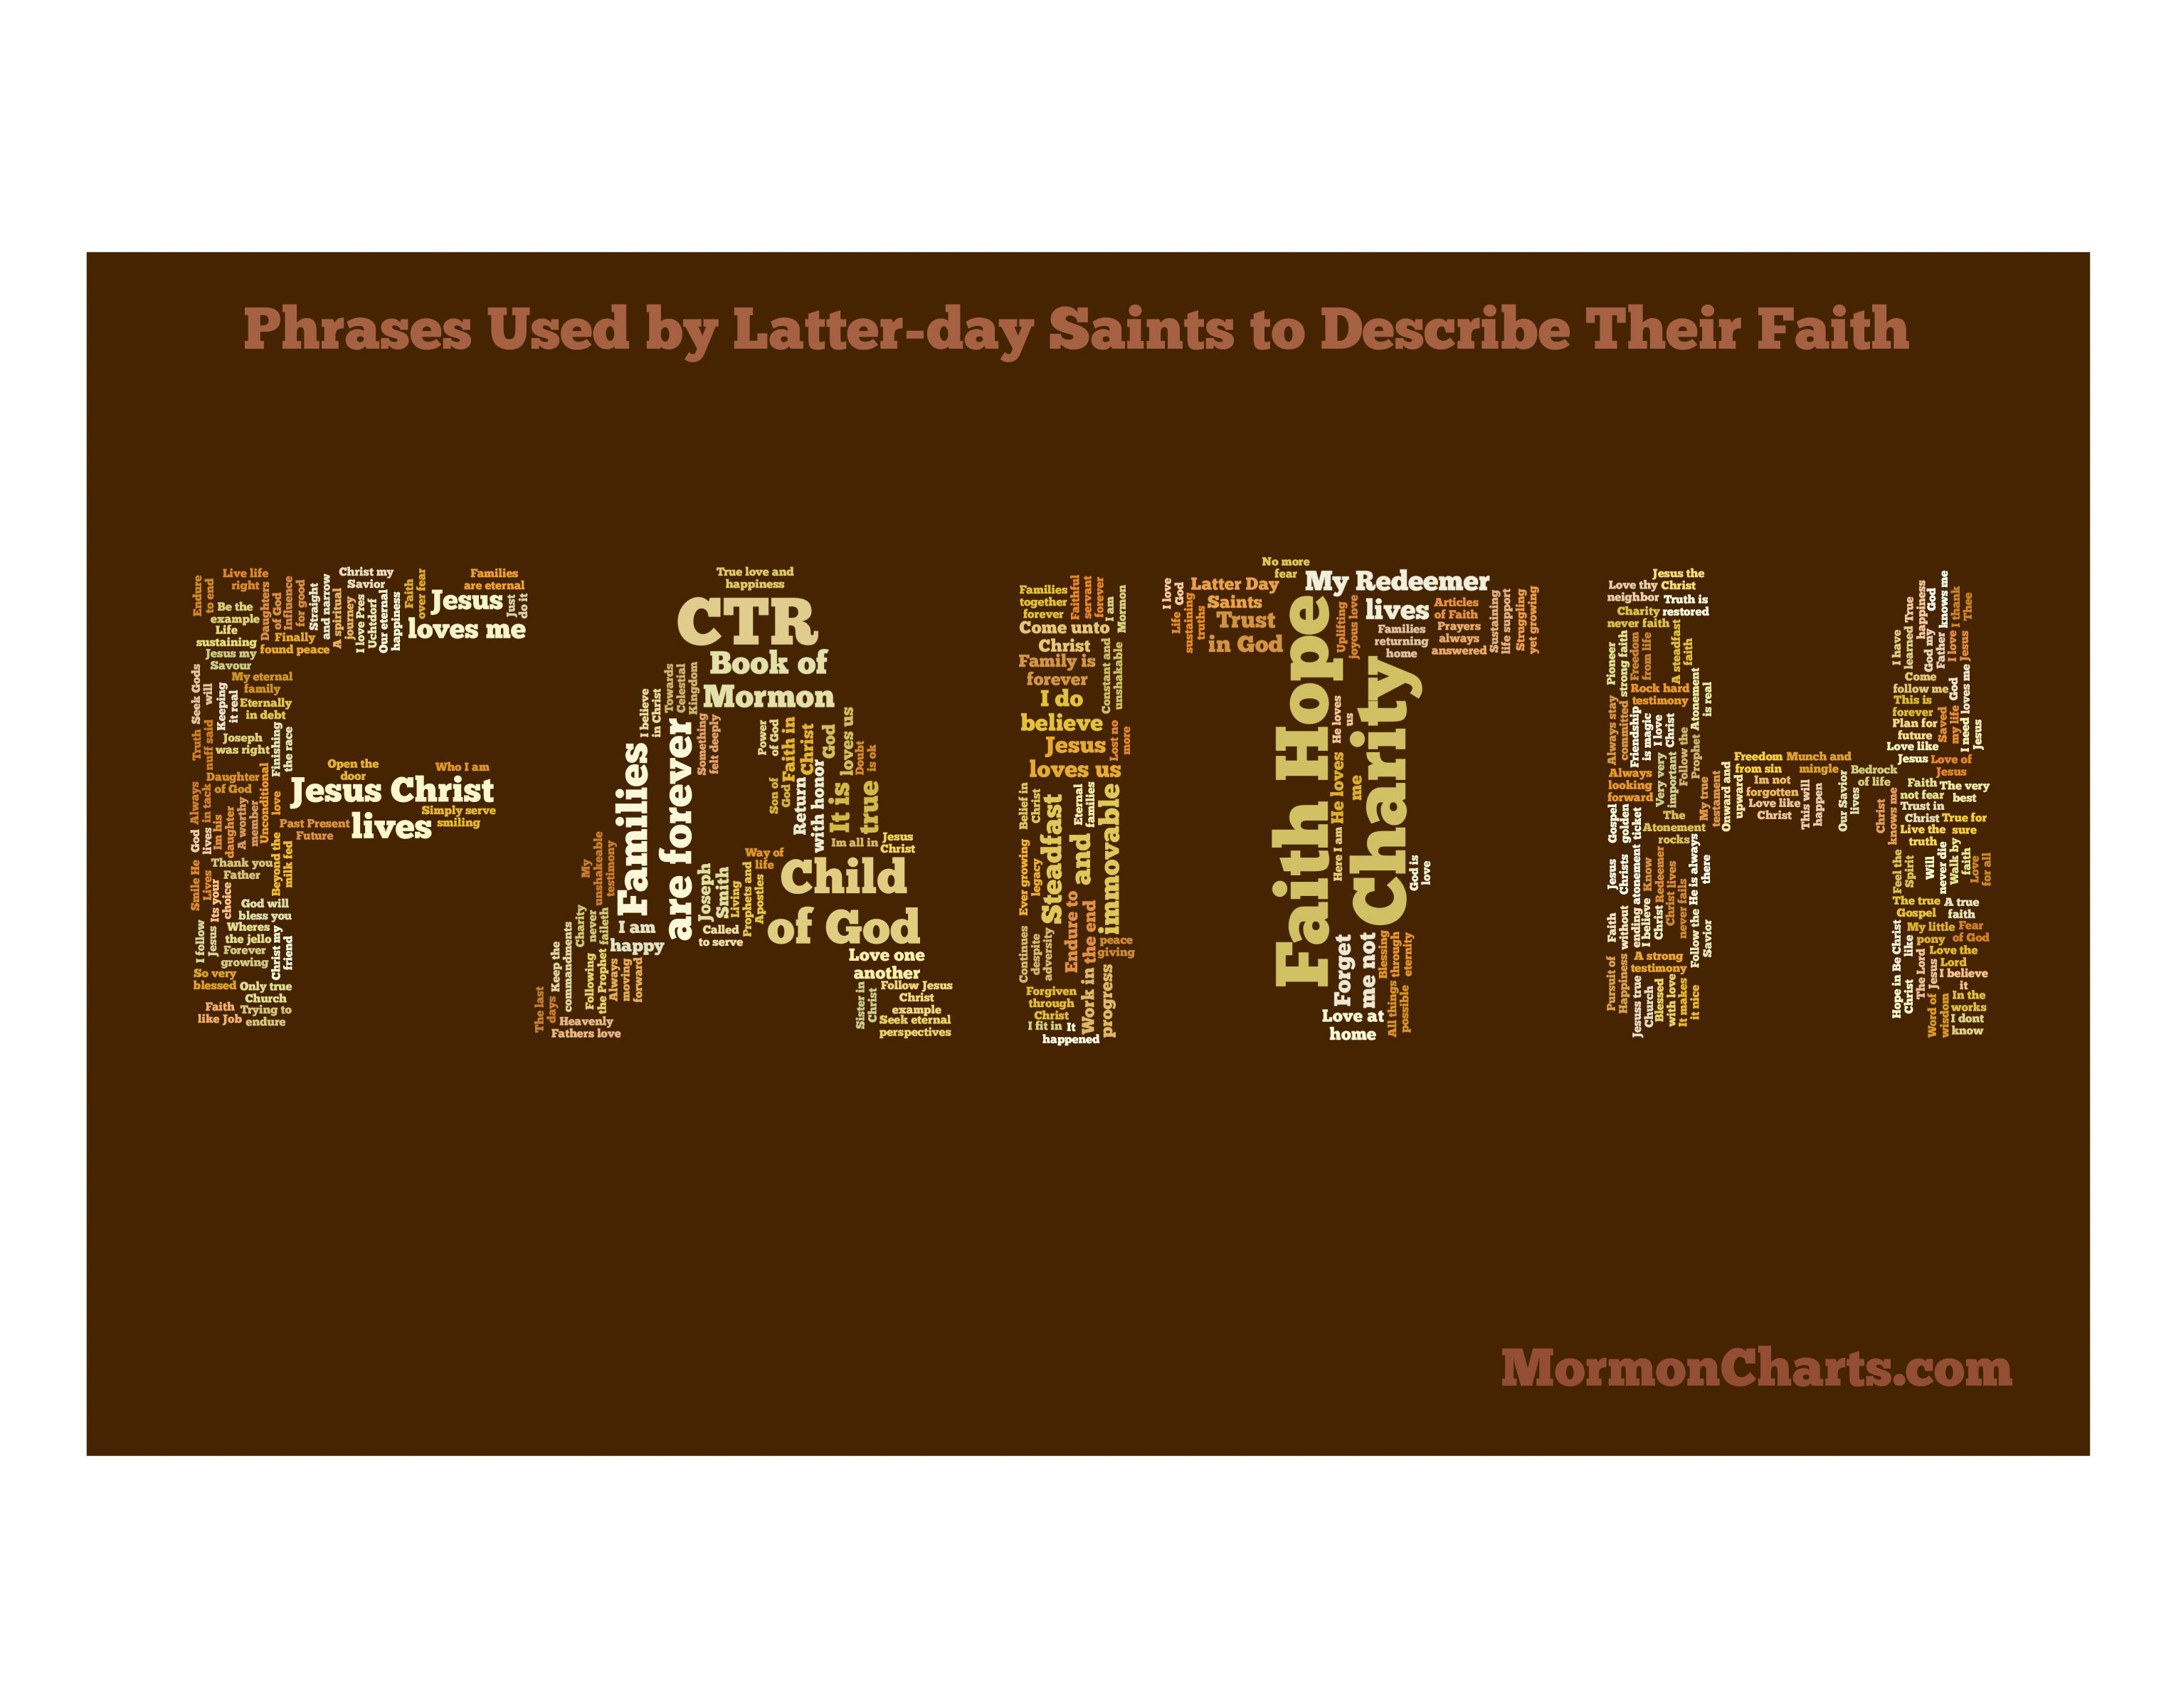 Phrases Used by Latter-day Saints to Describe Their Faith ::